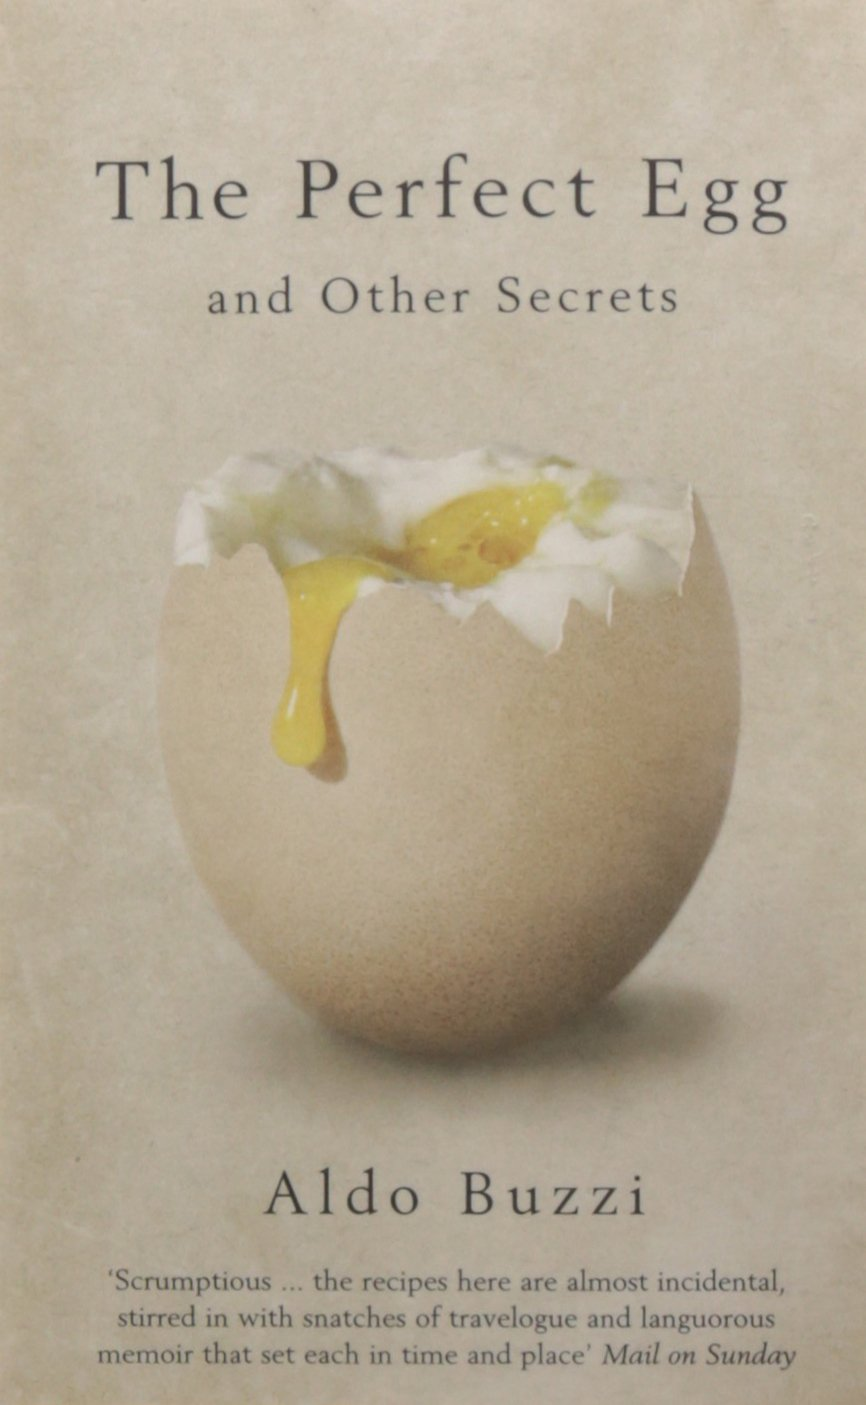 The Perfect Egg: and Other Secrets